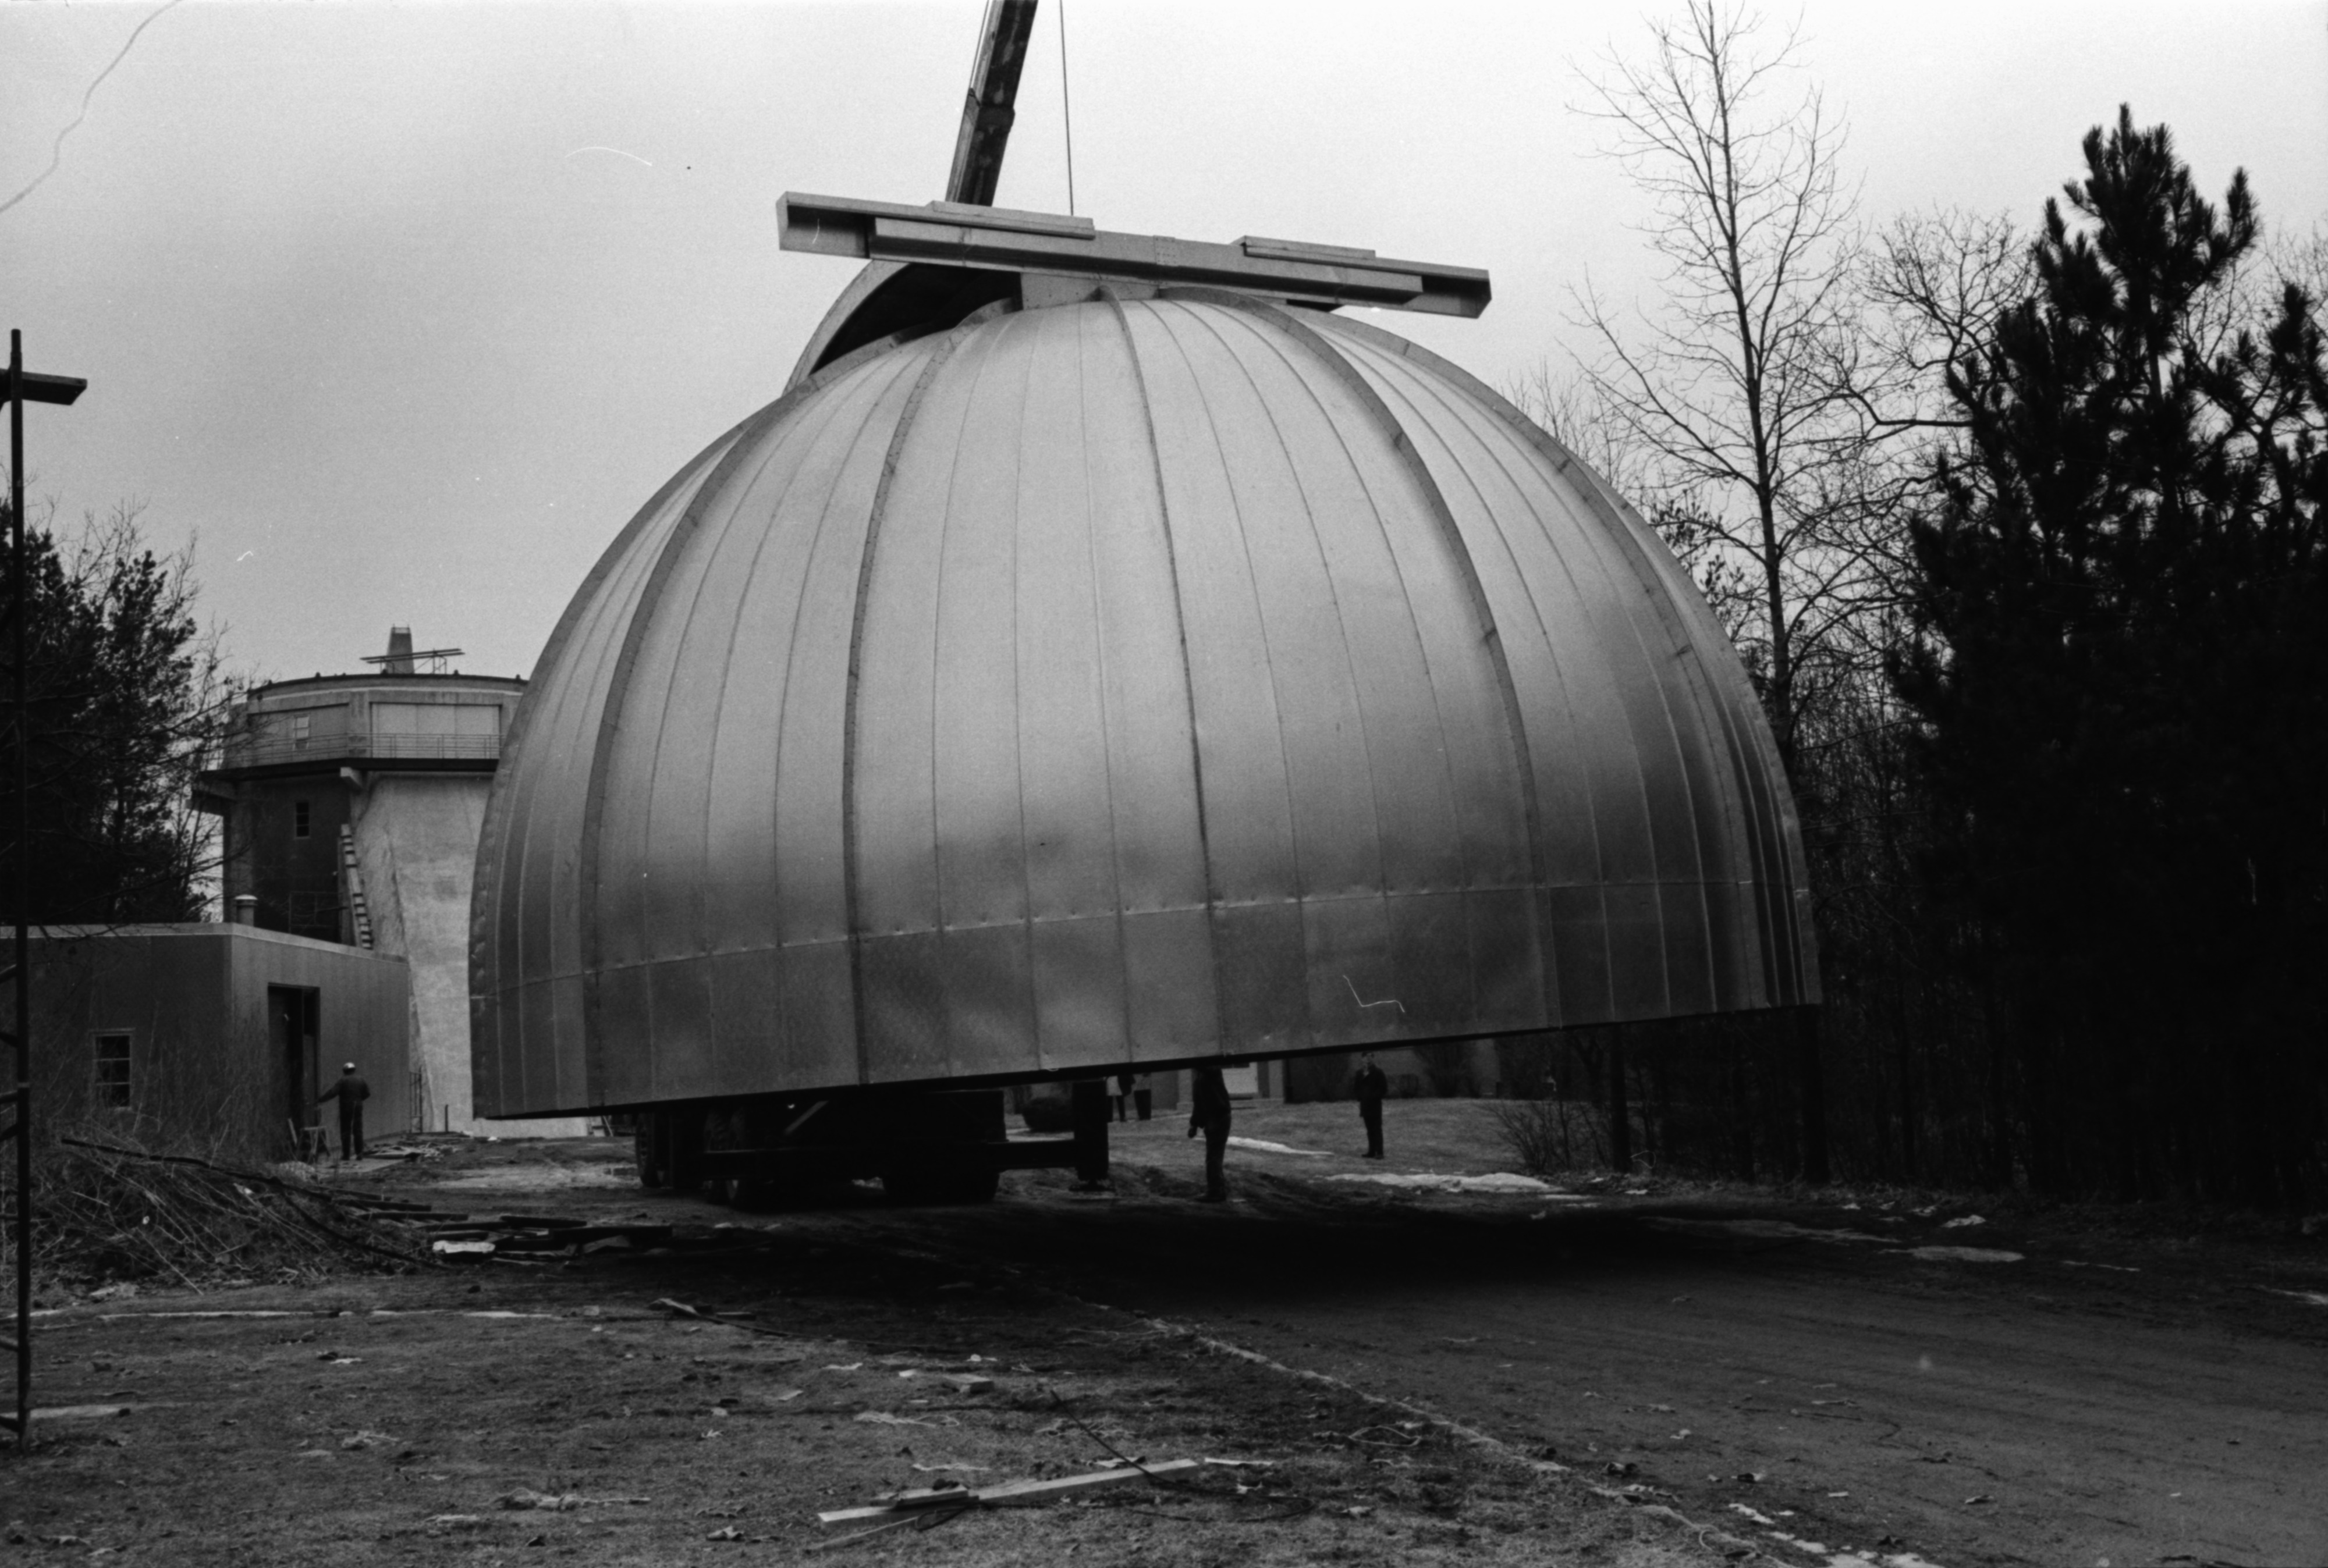 Dome for Observatory being lifted into place, Stinchfield Woods, February 1969 image